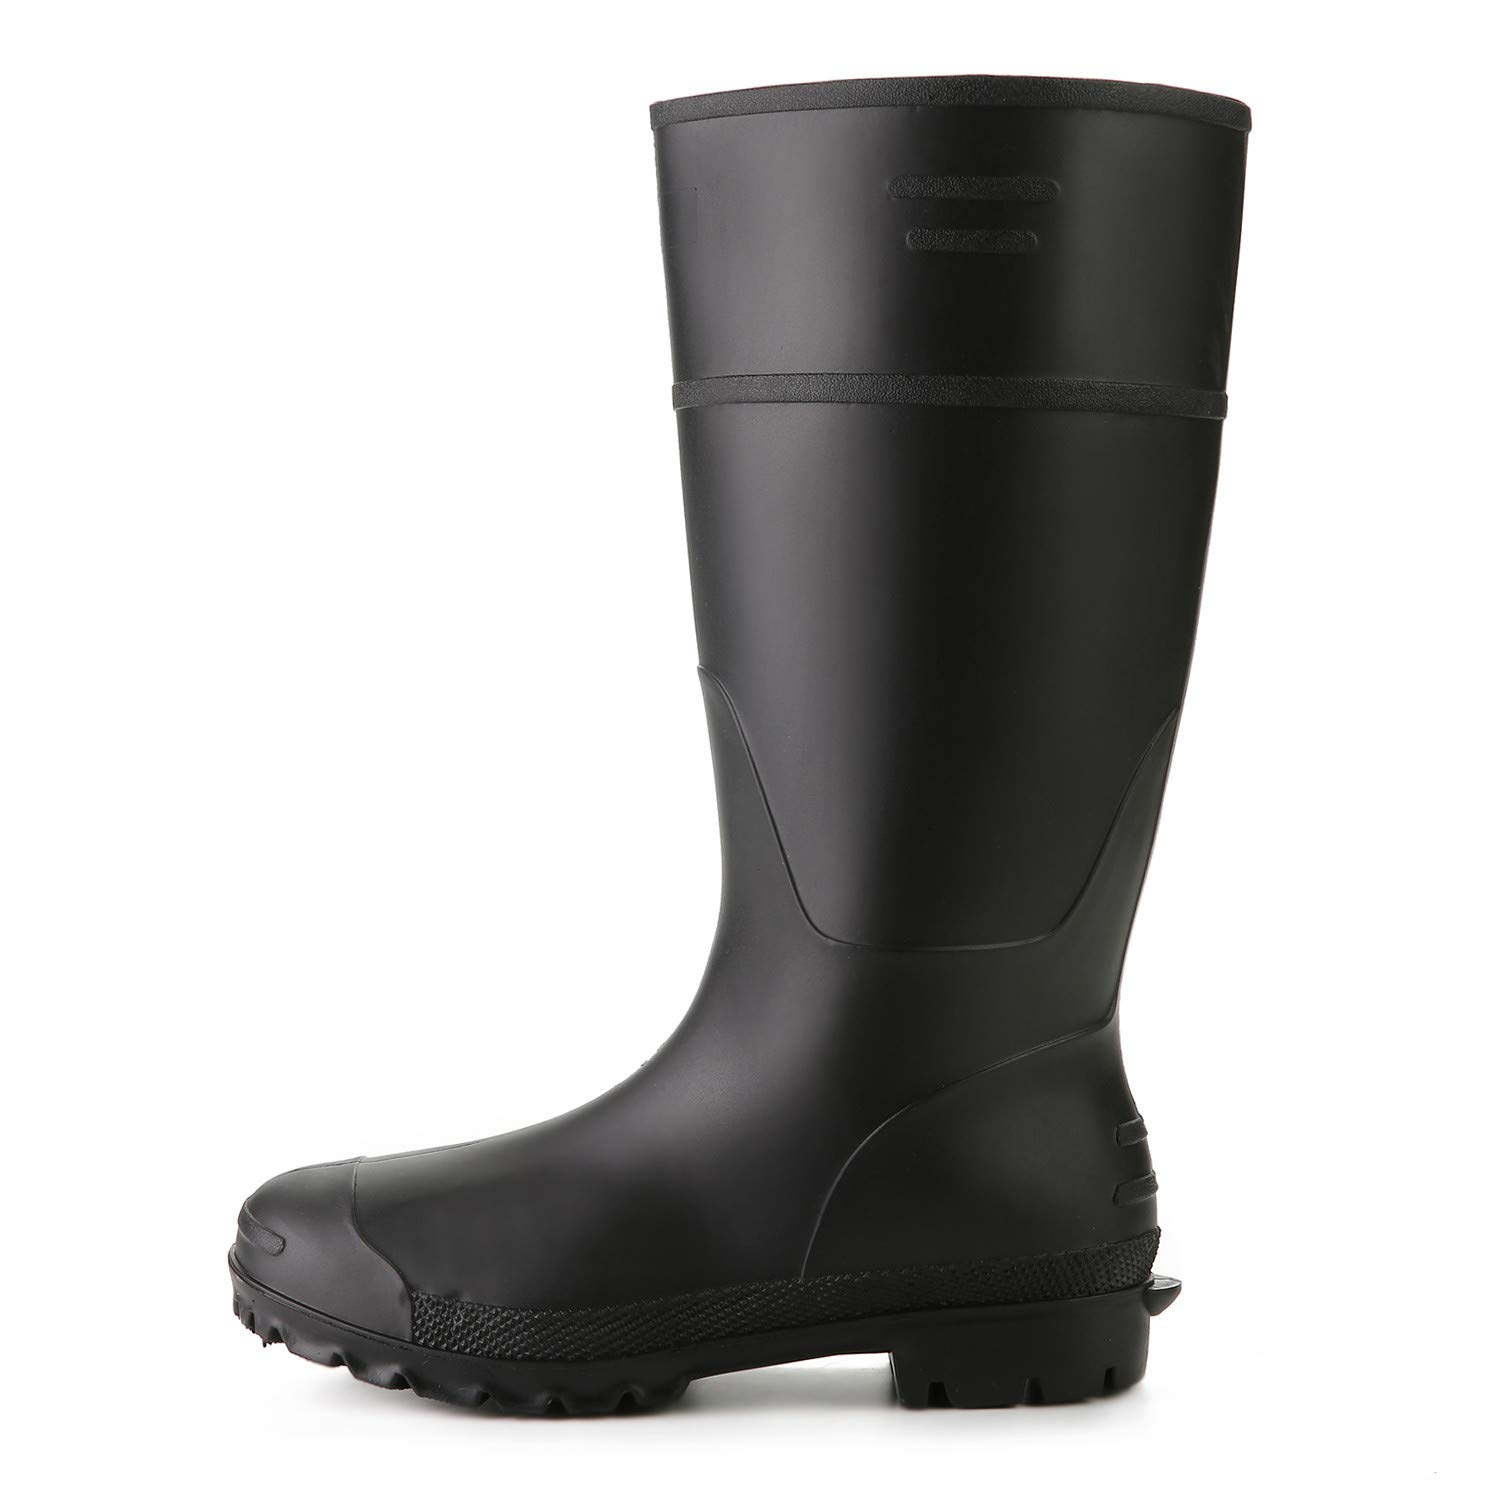 Short & Long Leg Half Height Wellies Unisex